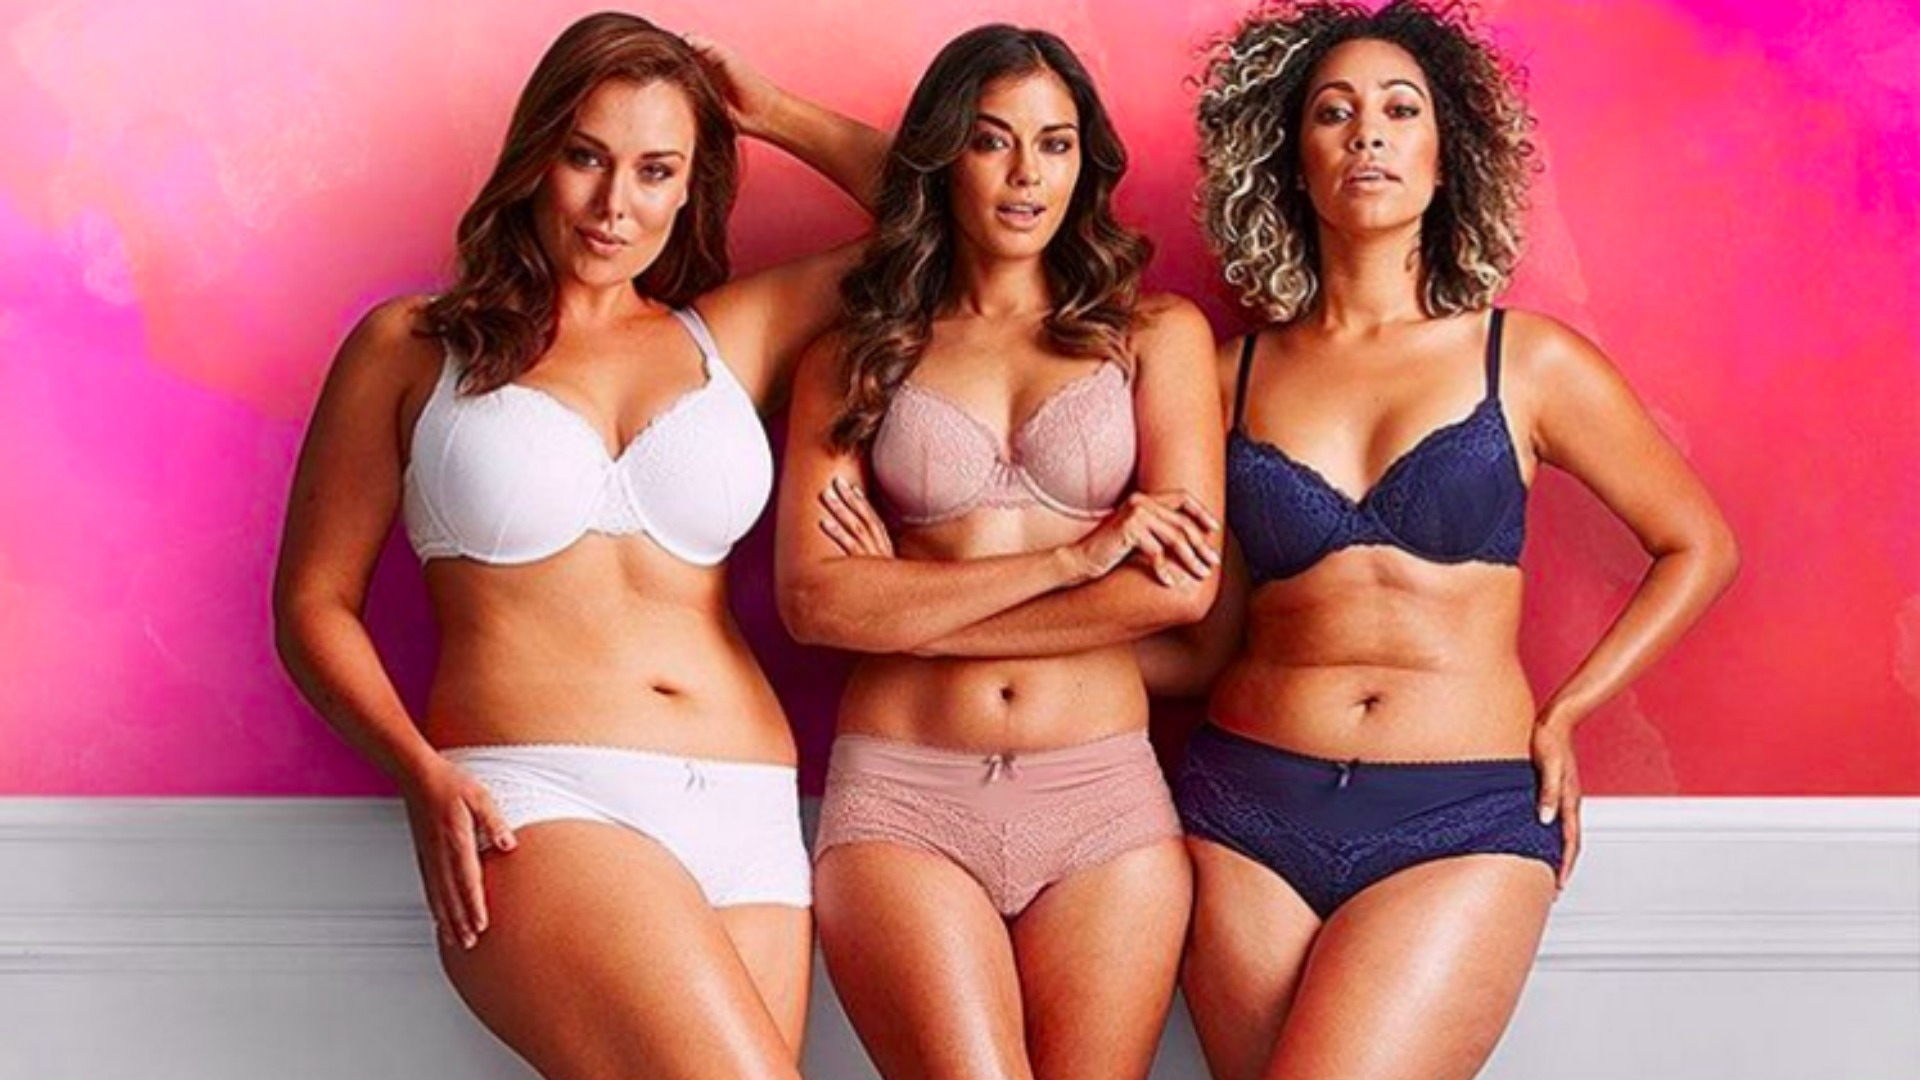 3fd3a4e6f14 Target Australia applauded for their new campaign featuring all body shapes